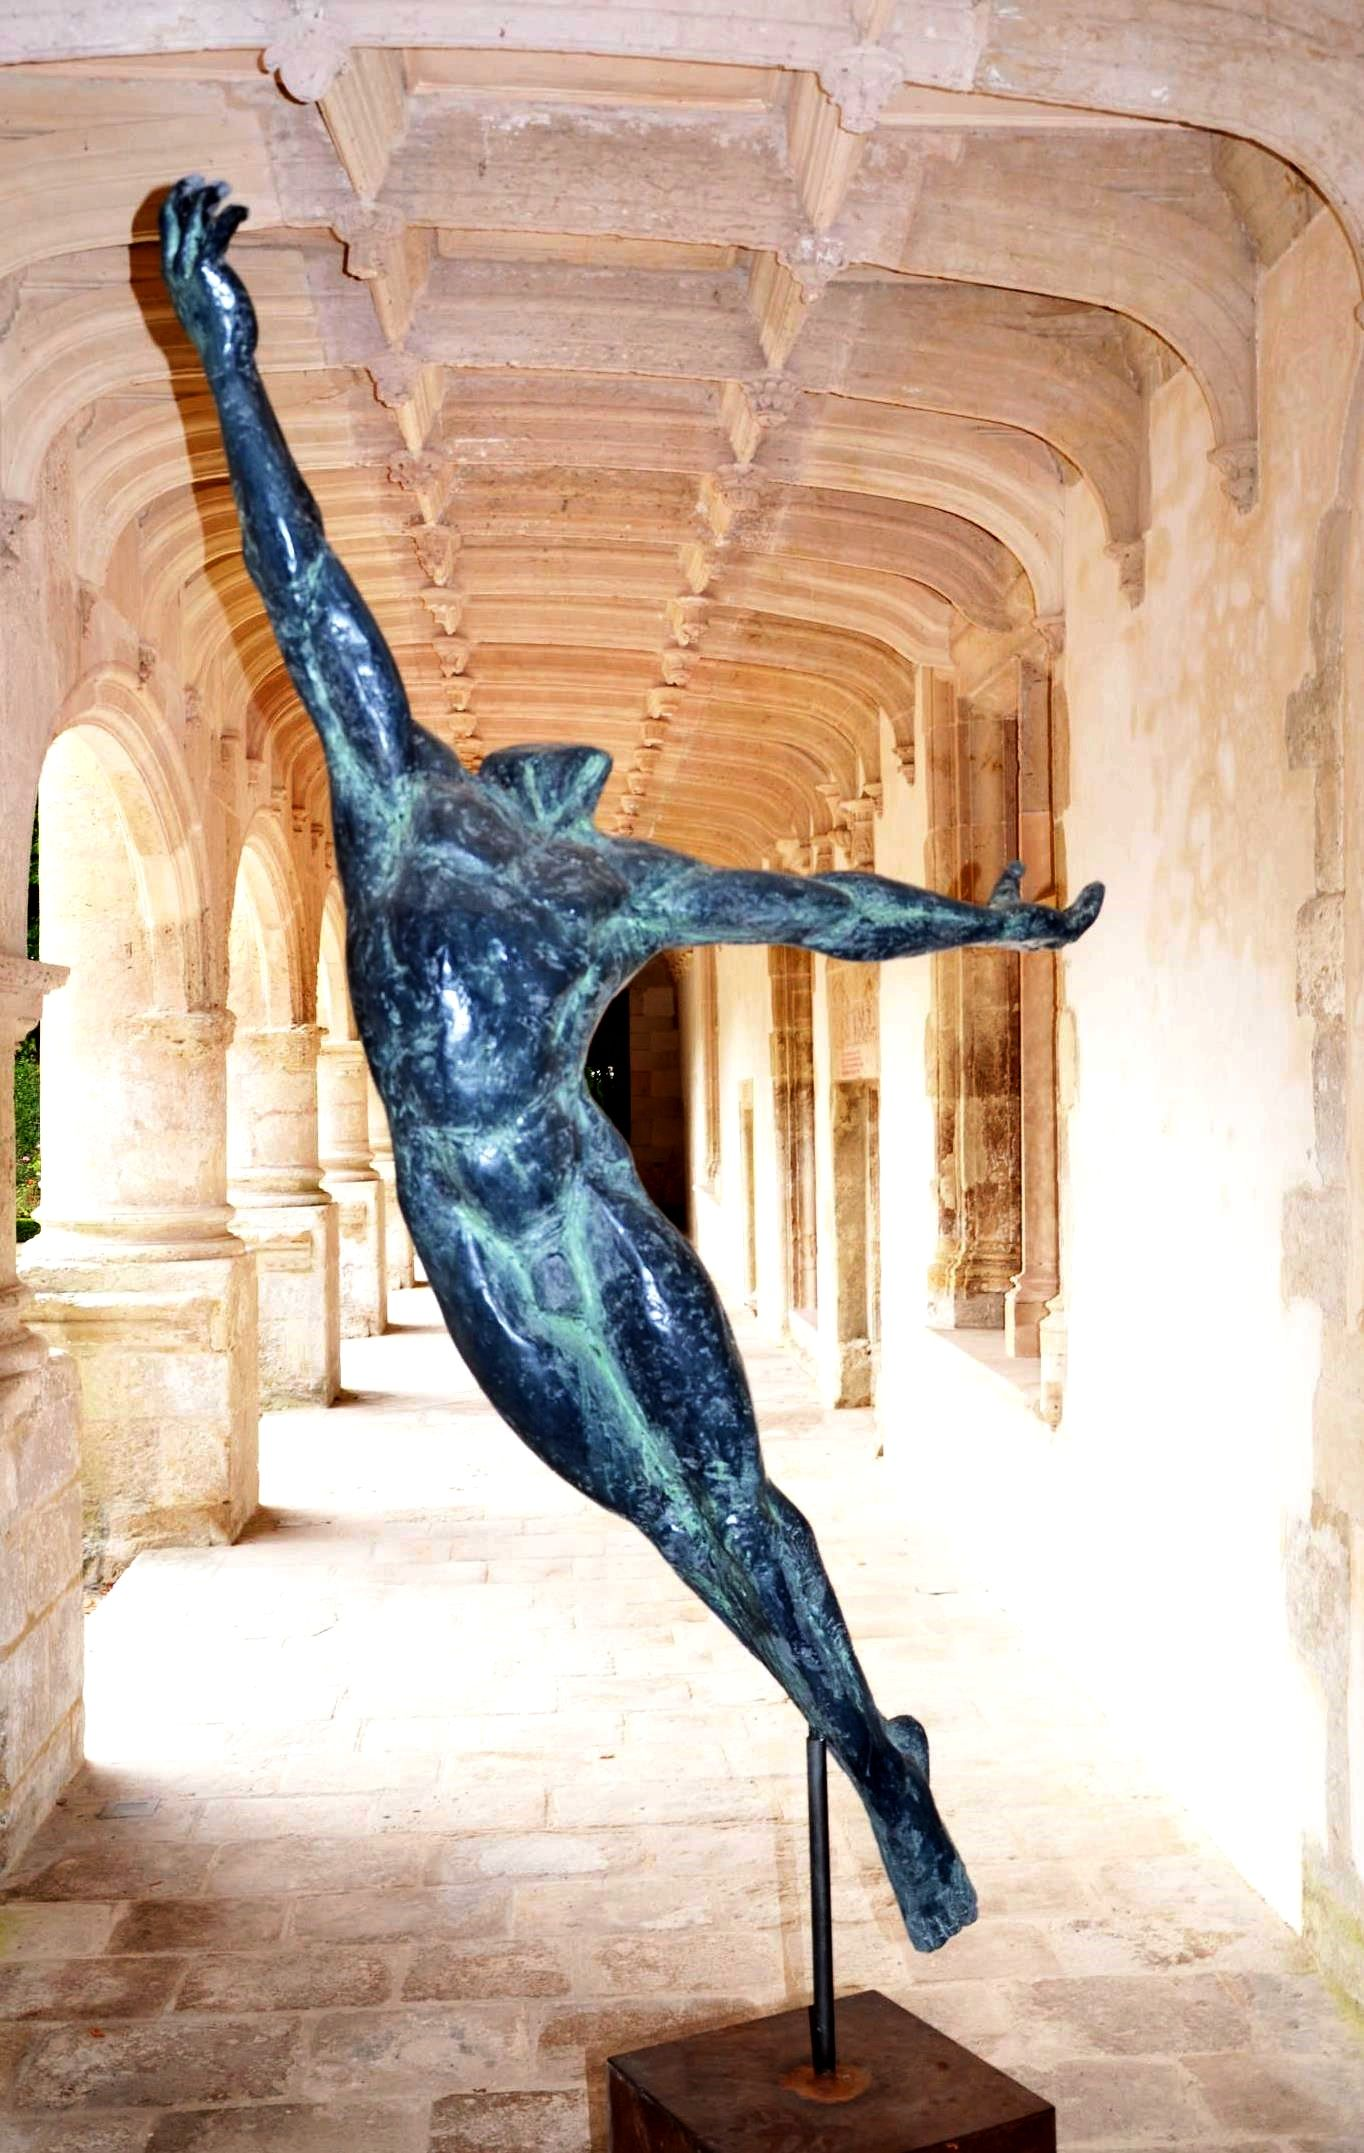 Le Grand Danseur IV,Yann Guillon,Sculpture contemporaine, detail 4